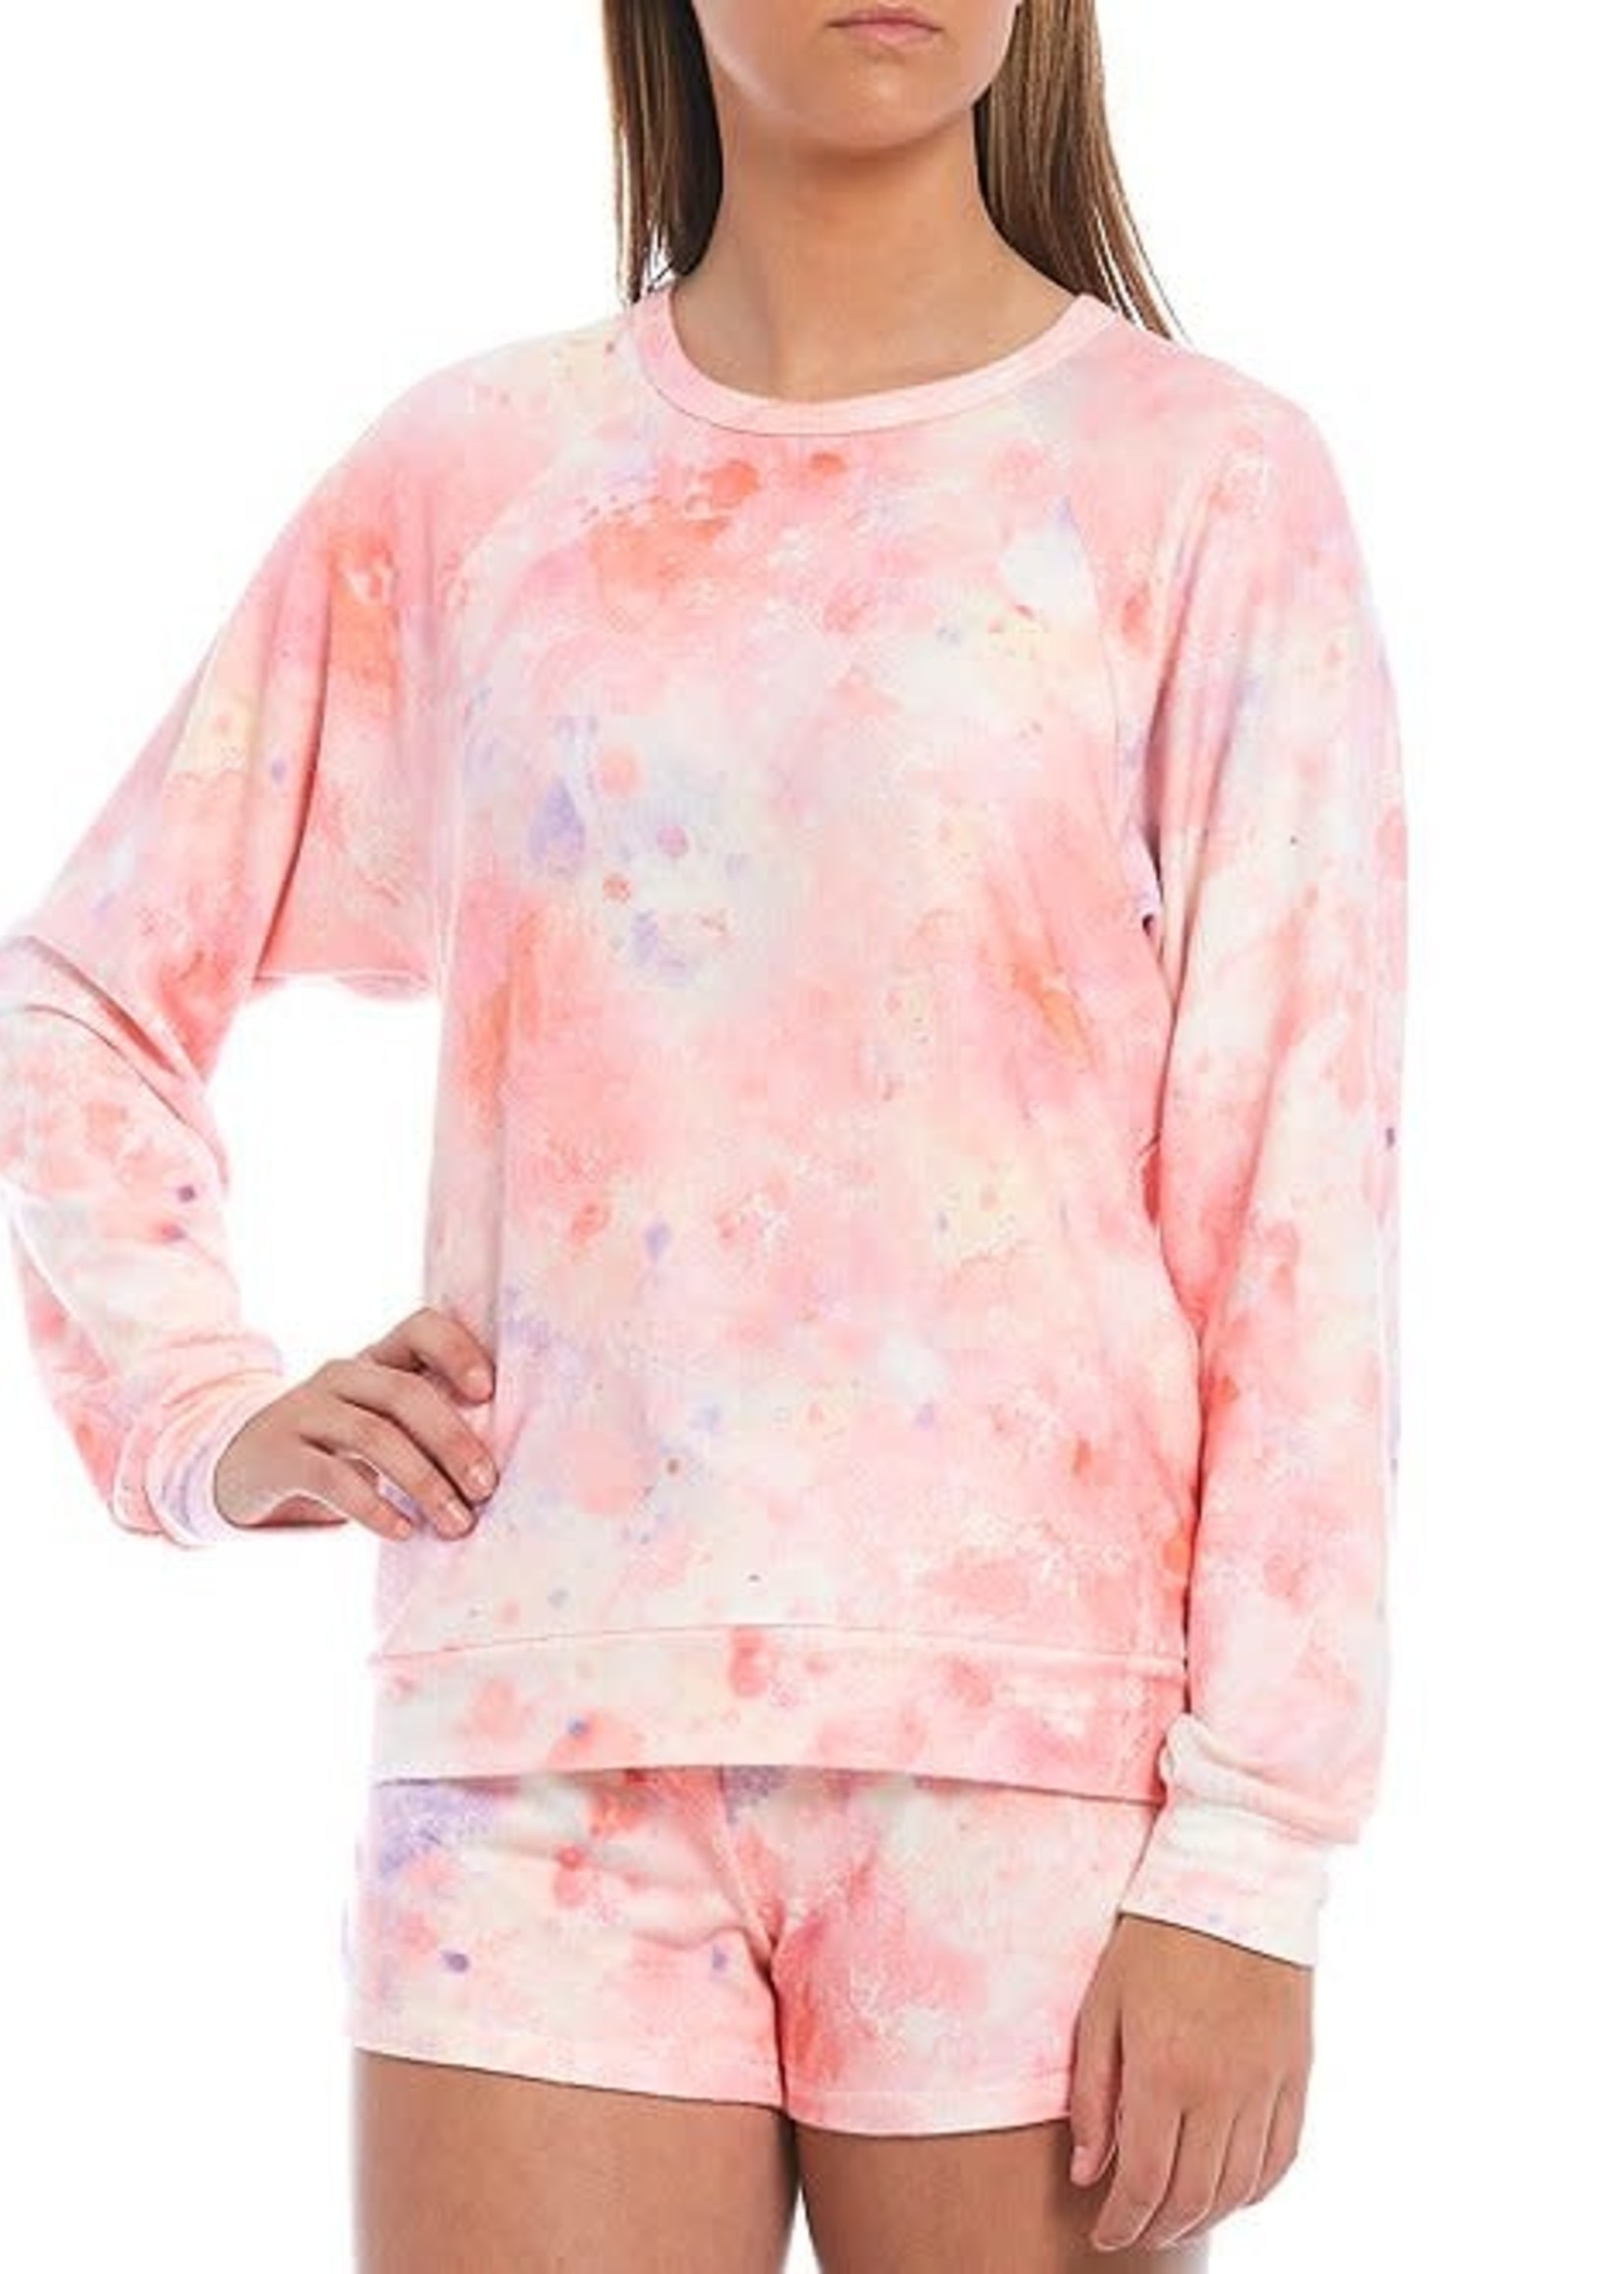 L/S Melting Coral Top